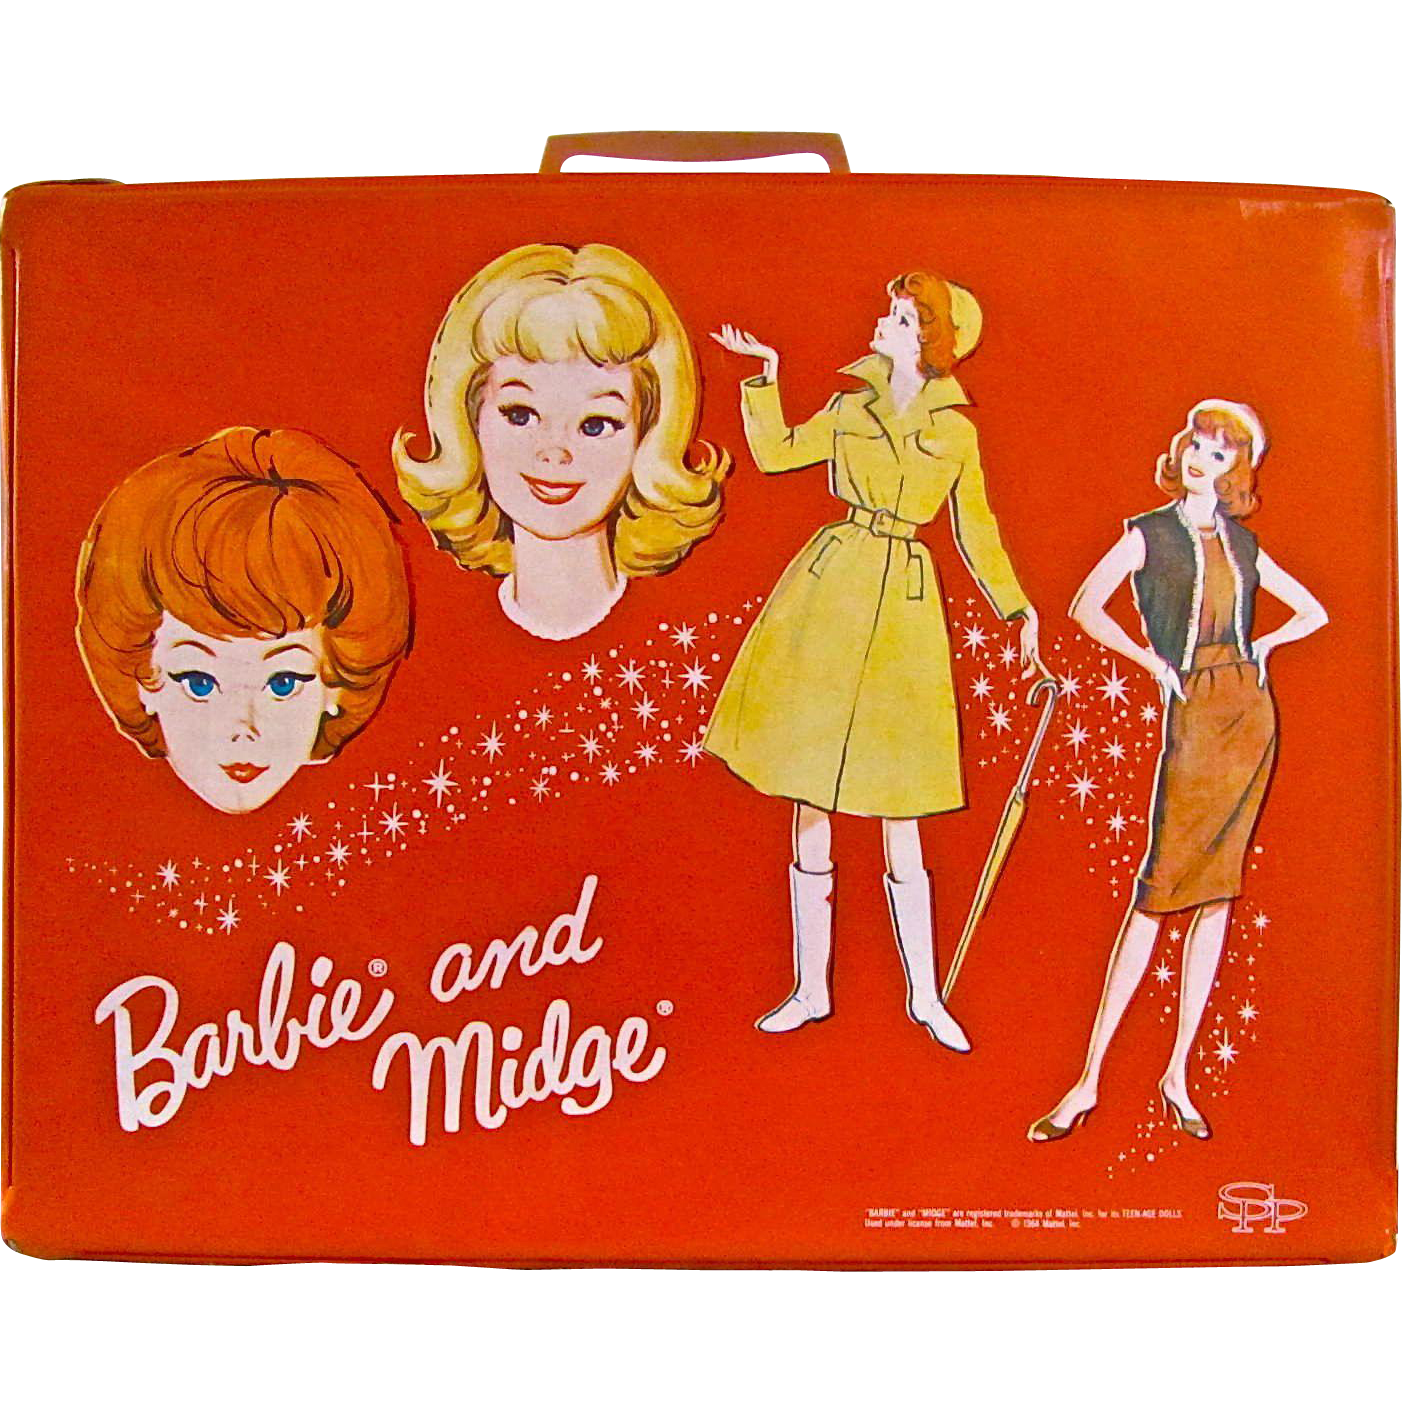 Barbie and Midge Double Doll Case Vintage 1963, Red Vinyl Suitcase, Standard Plastic Products